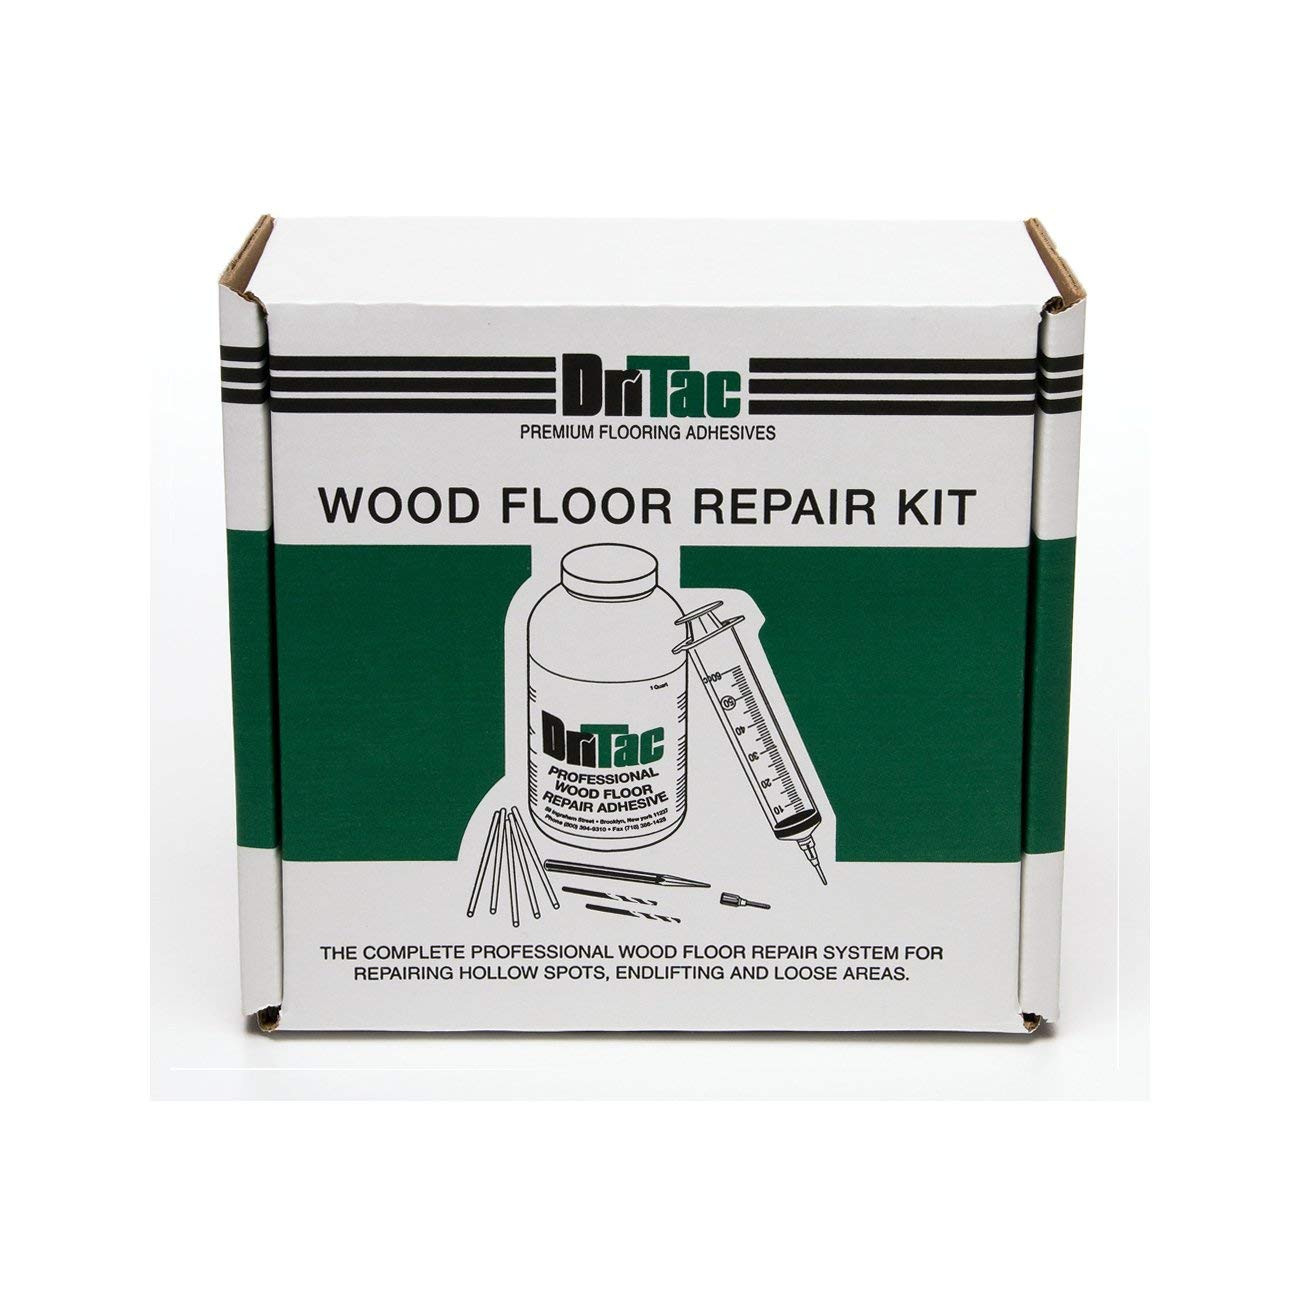 h d hardwood flooring company of amazon com dritac wood floor repair kit engineered flooring only throughout amazon com dritac wood floor repair kit engineered flooring only 32oz home kitchen